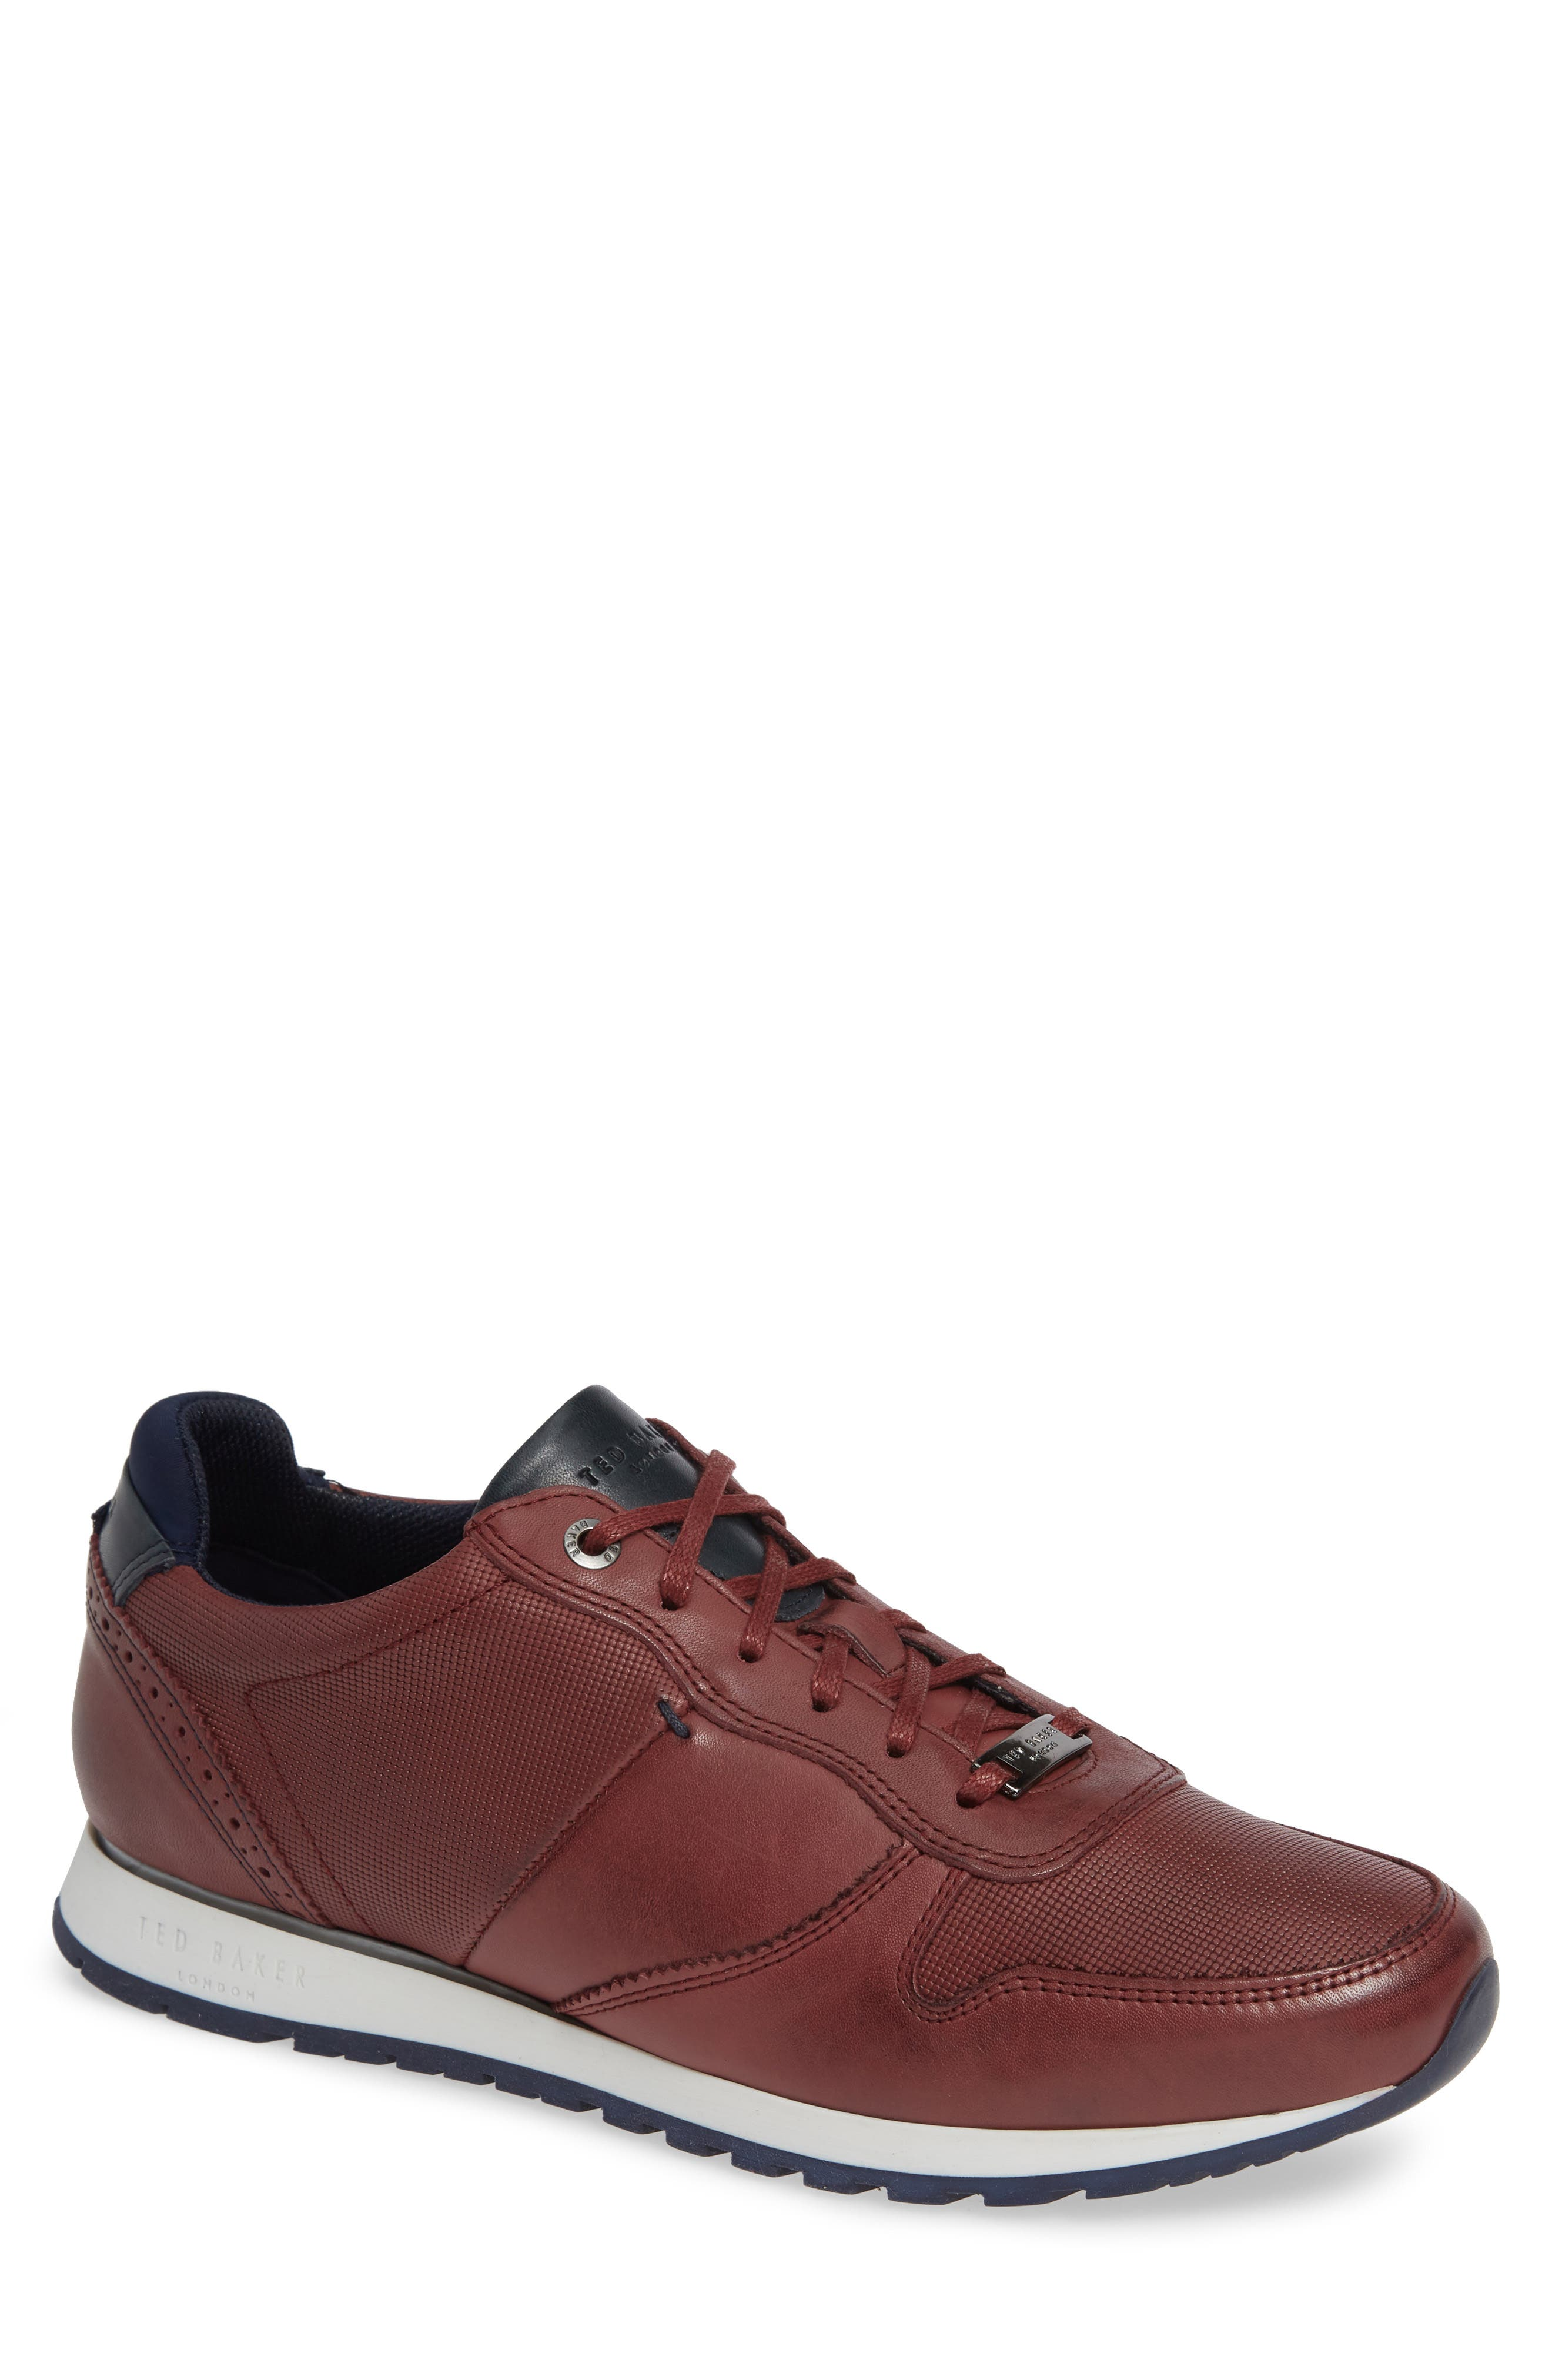 Shindl Sneaker,                         Main,                         color, Dark Red Leather